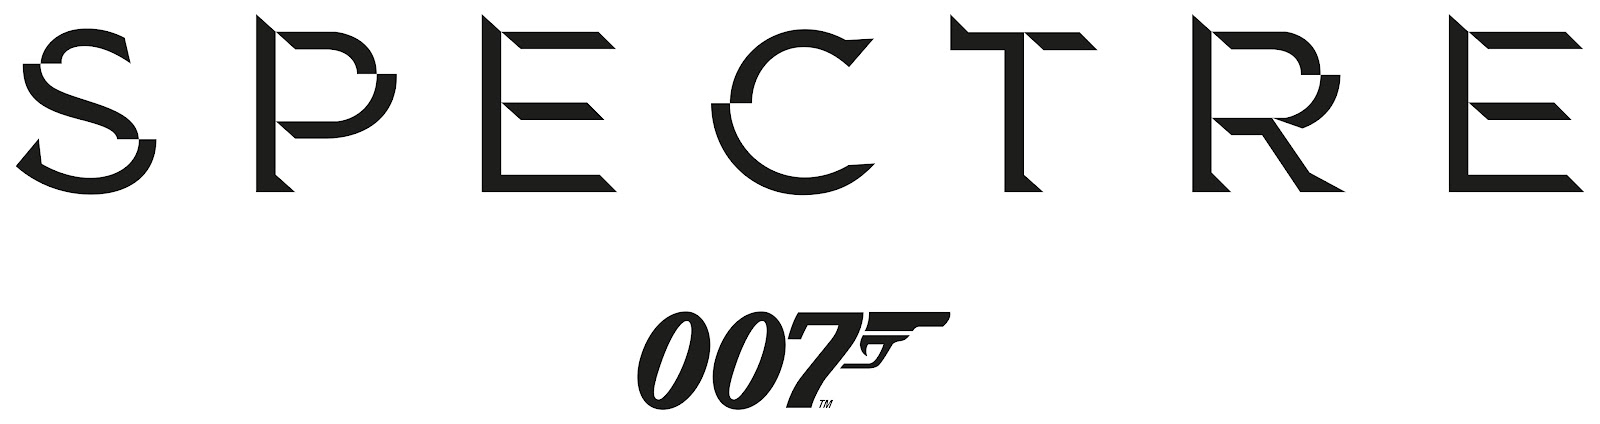 Bond 24 Spectre Official Logo Artwork